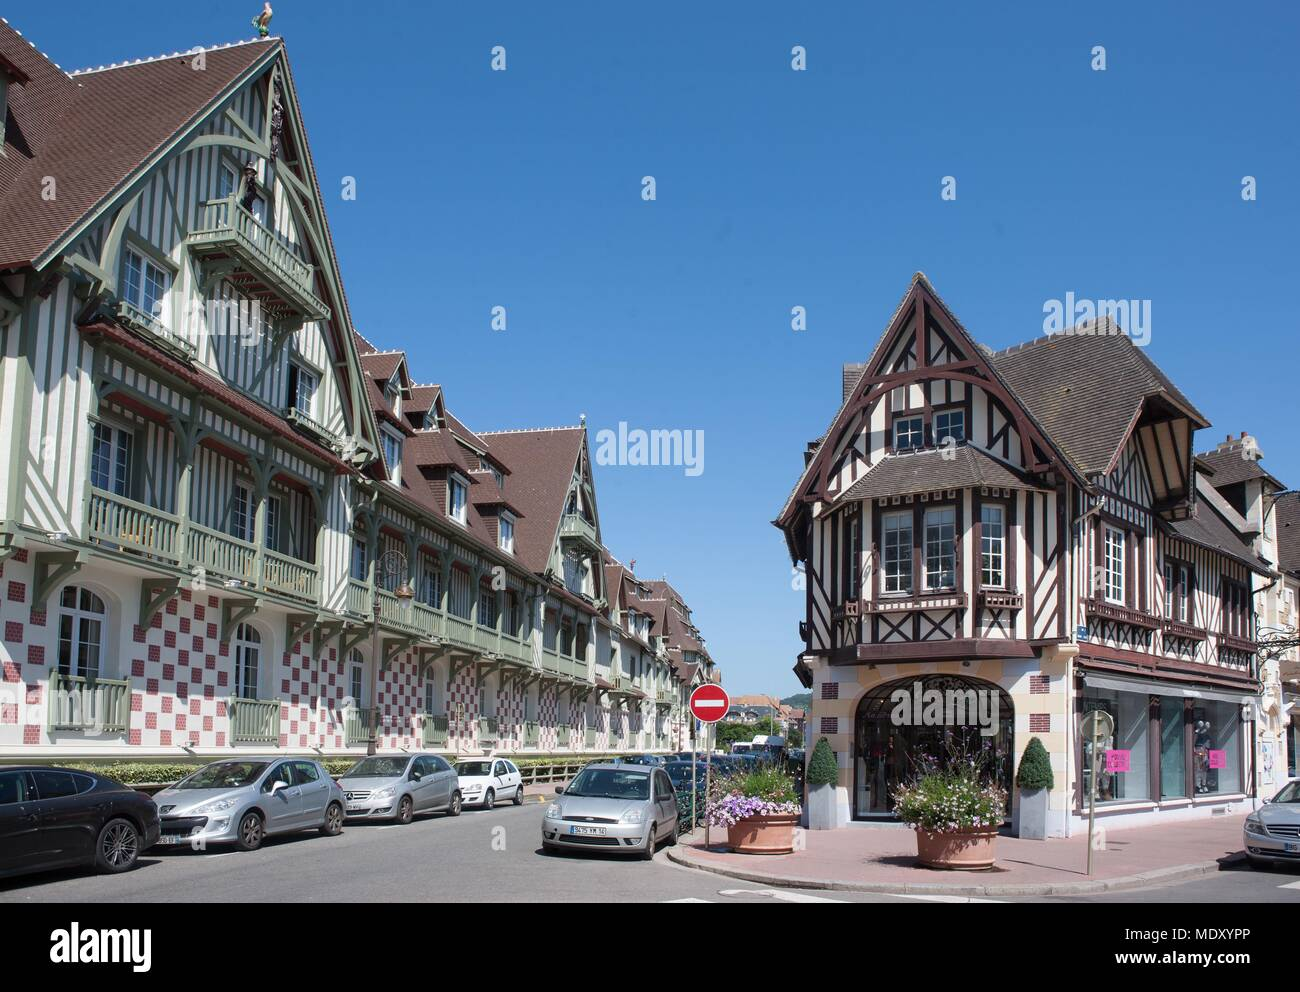 bbb8ba521b55b France, Normandy region, Calvados, Côte Fleurie, Deauville, roundabout yves  saint laurent, luxury shops, hotel normandy barrier on the left,